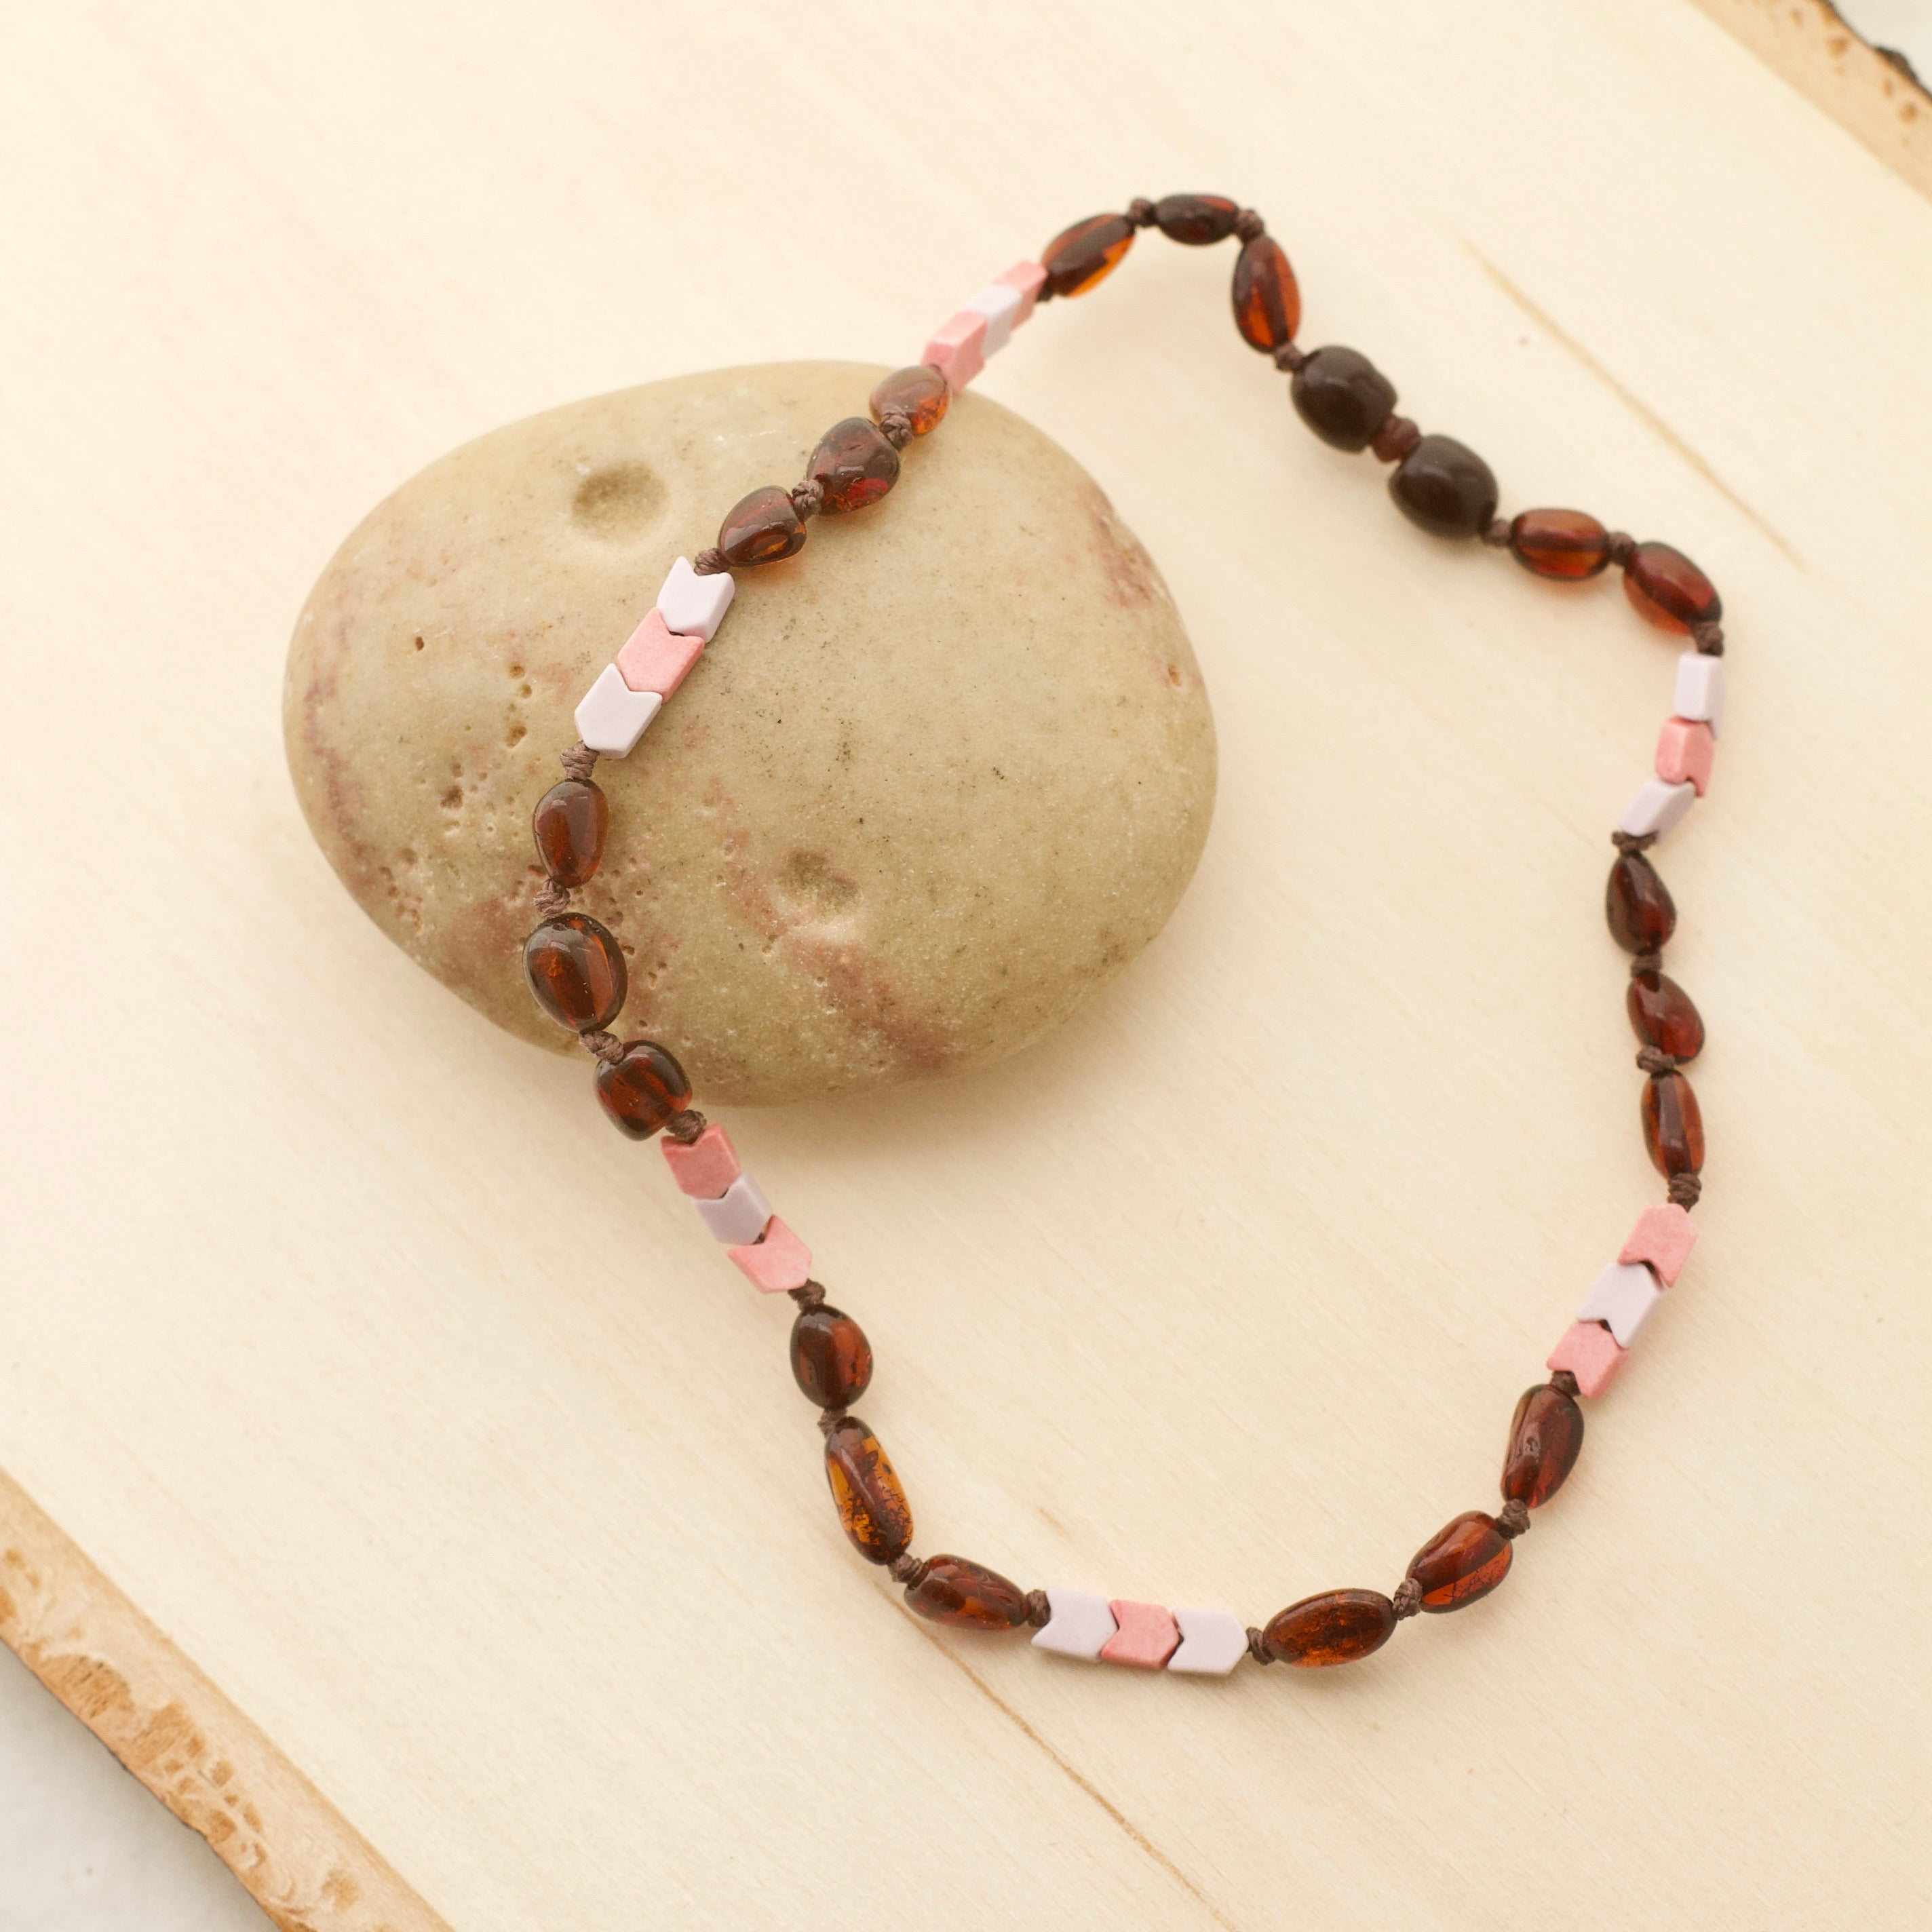 Chevron Rose & Lavender Agate + Cherry Amber Necklace